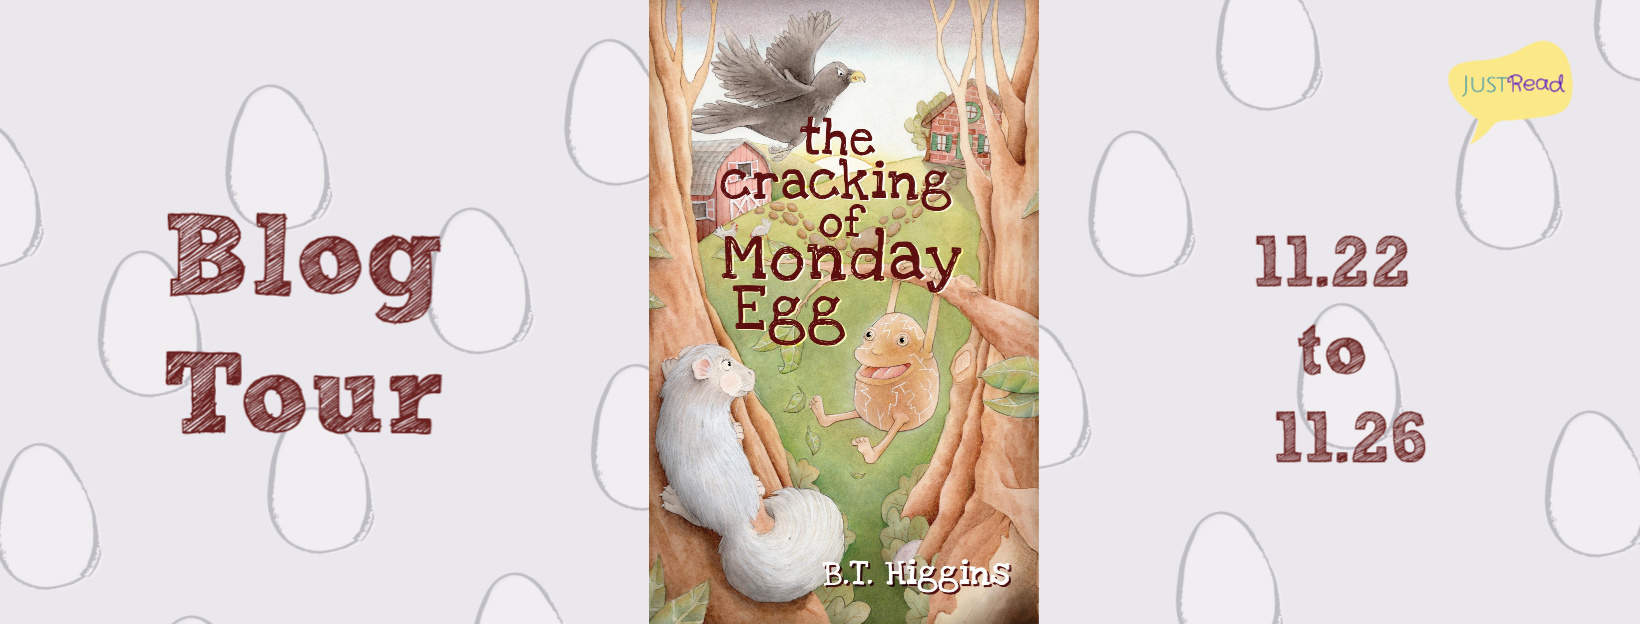 Welcome to The Cracking of Monday Egg Blog Tour & Giveaway!